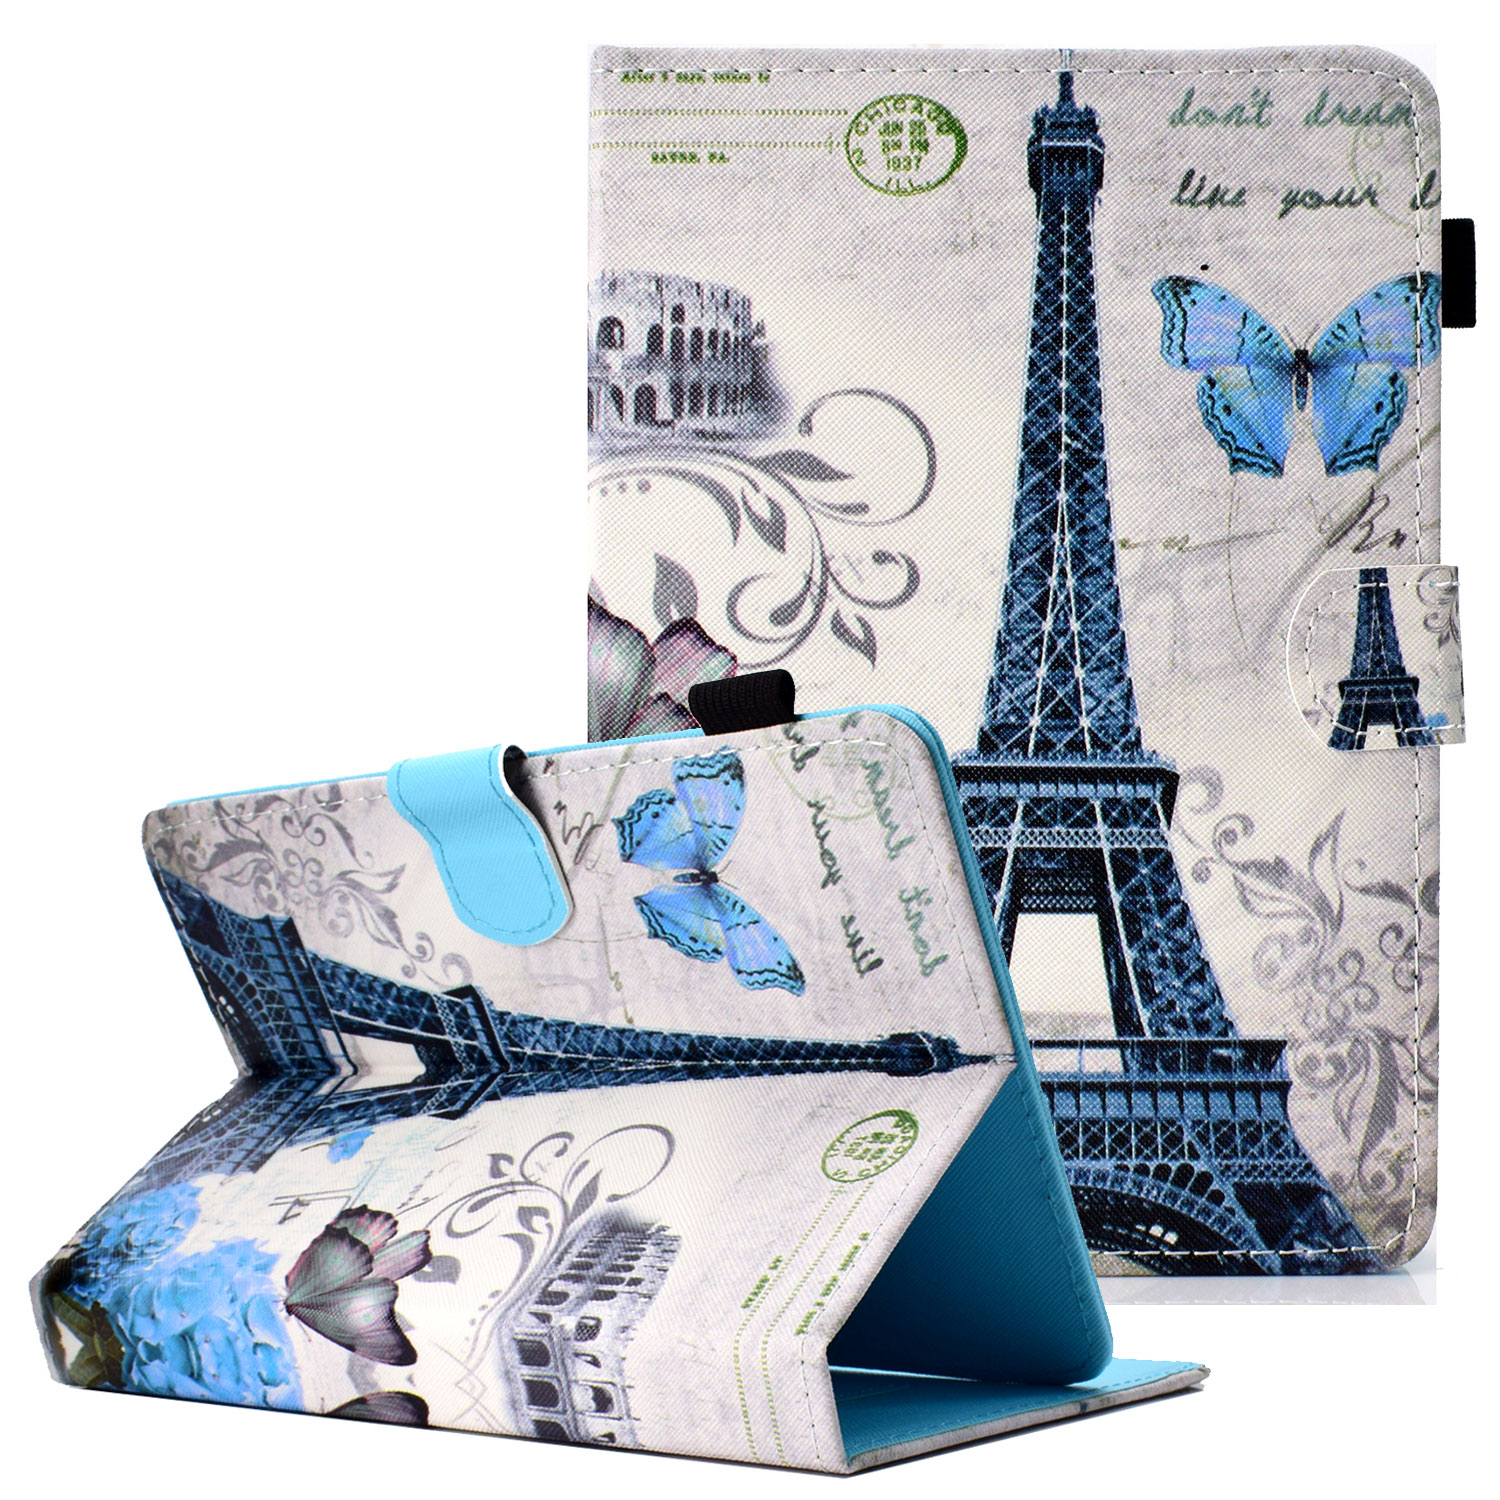 "Goodest Universal 8 Inch Tablet Case, Slim Fit Folio Protective Stand Wallet Cover for 6.5-7.5"" Tablet 8"" Touchscreen/iPad Mini/Galaxy Tab A/E 8.0/Fire HD 8/RCA /Chrome Nextbook iView,Eiffel Tower"